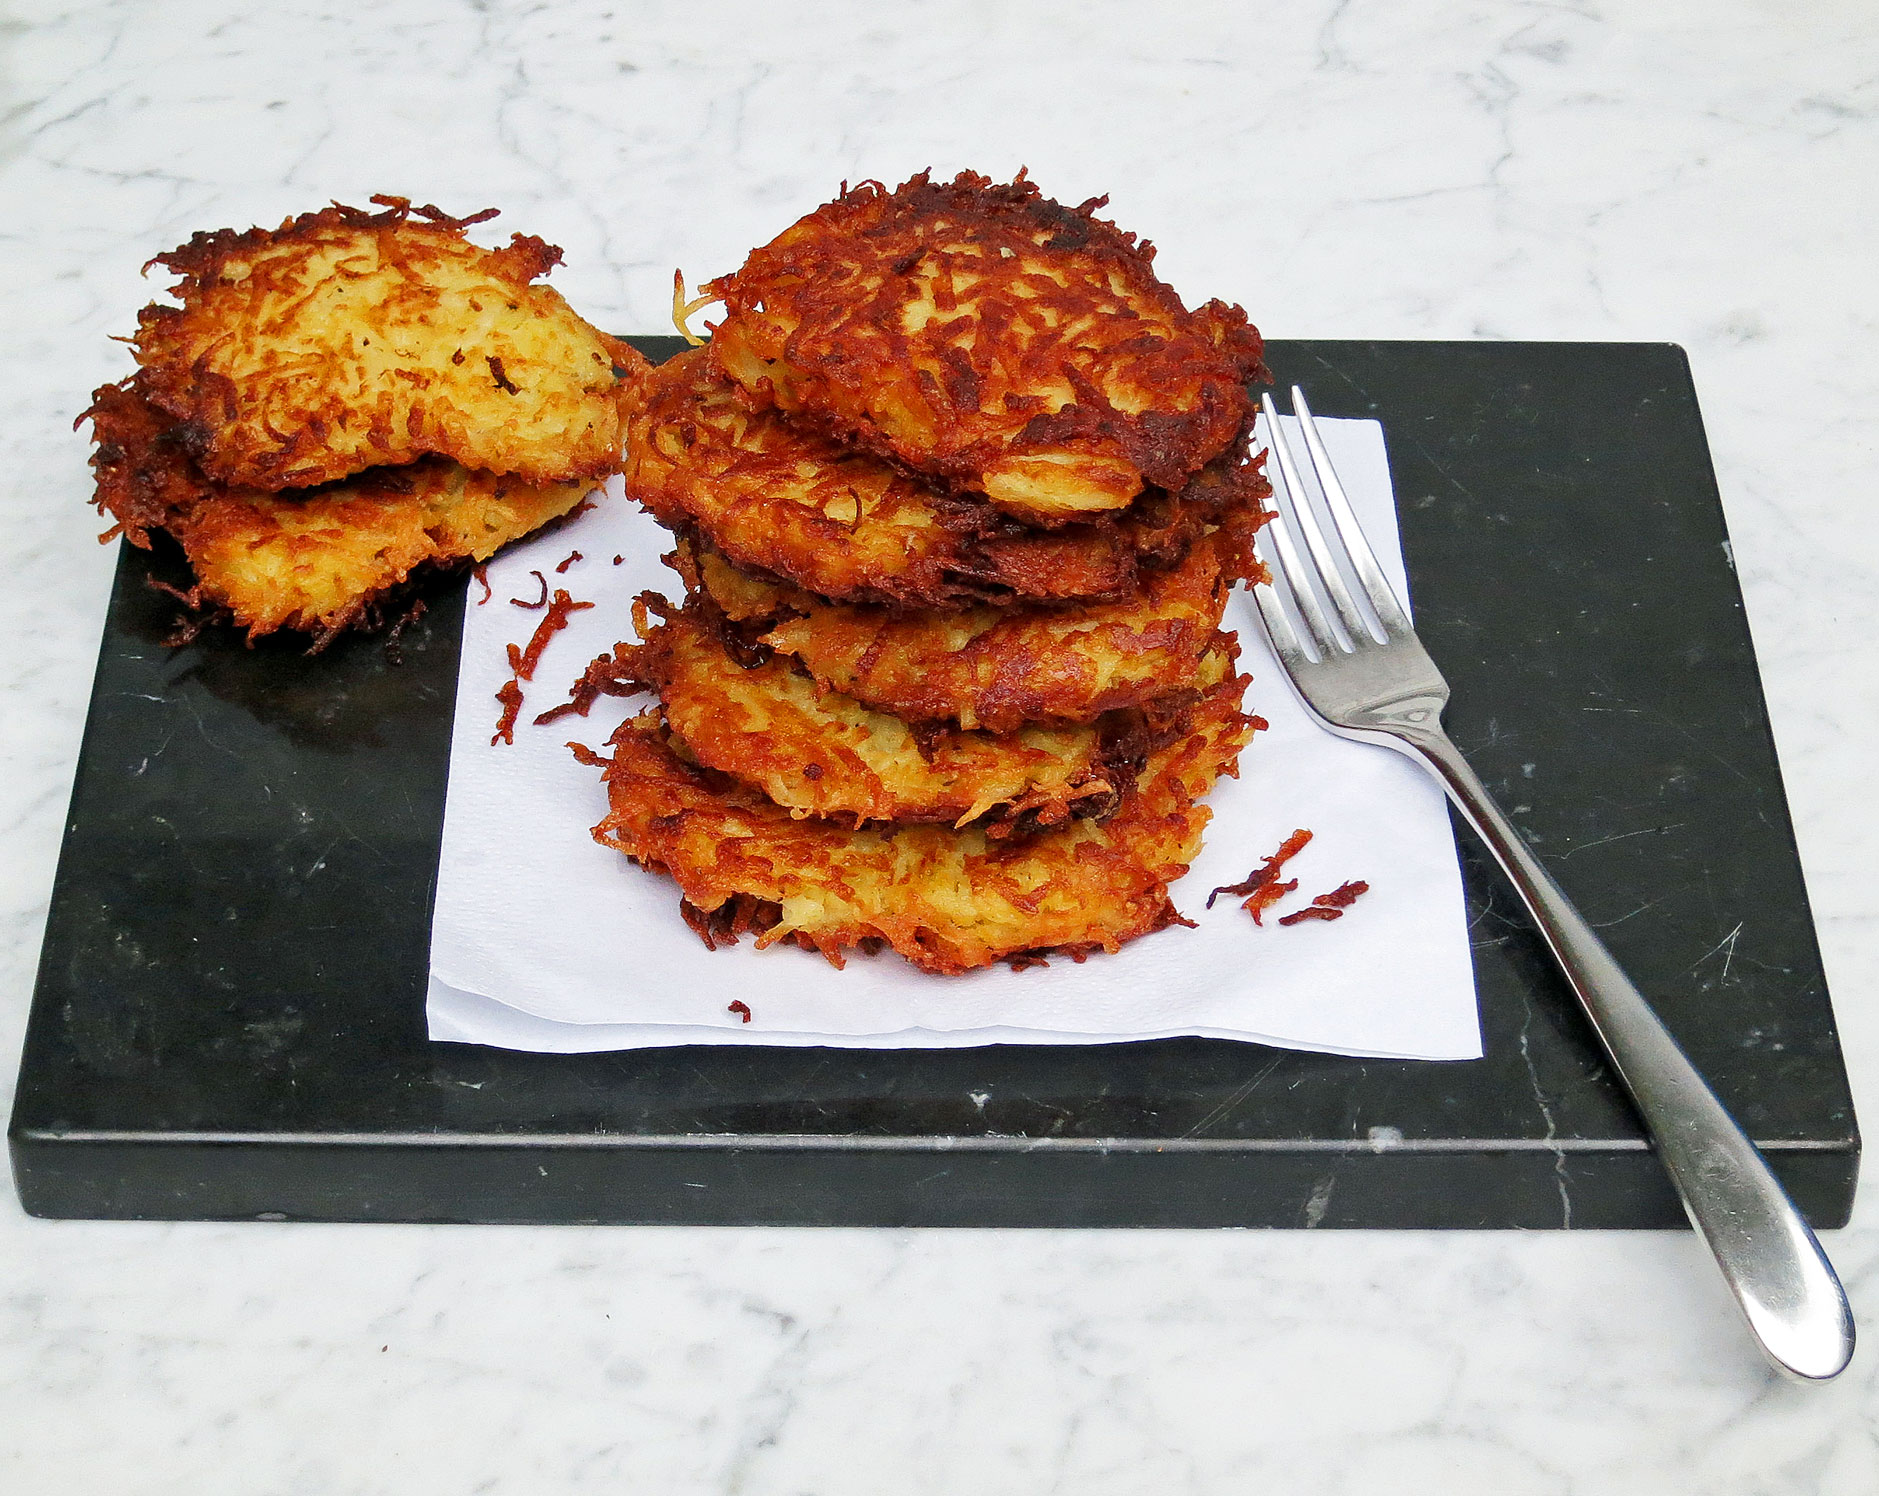 Potato latkes (potato cakes)